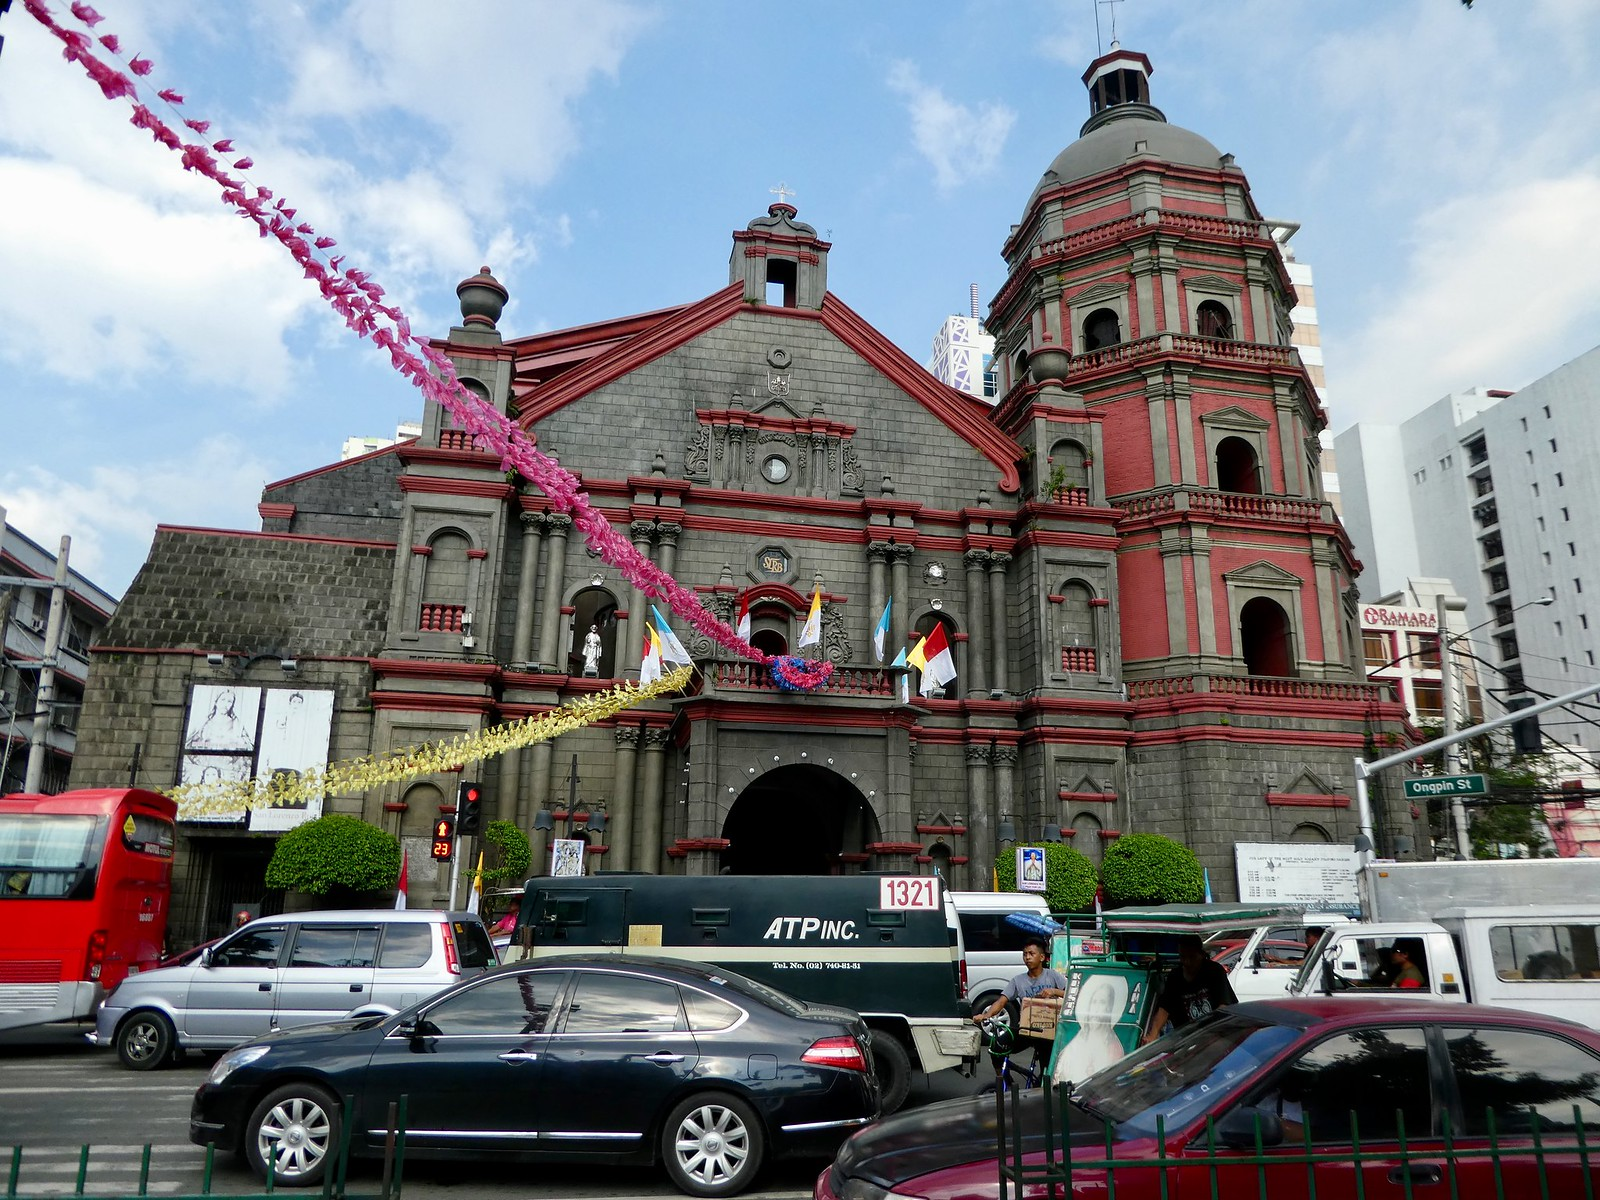 Binondo Church, Chinatown, Manila